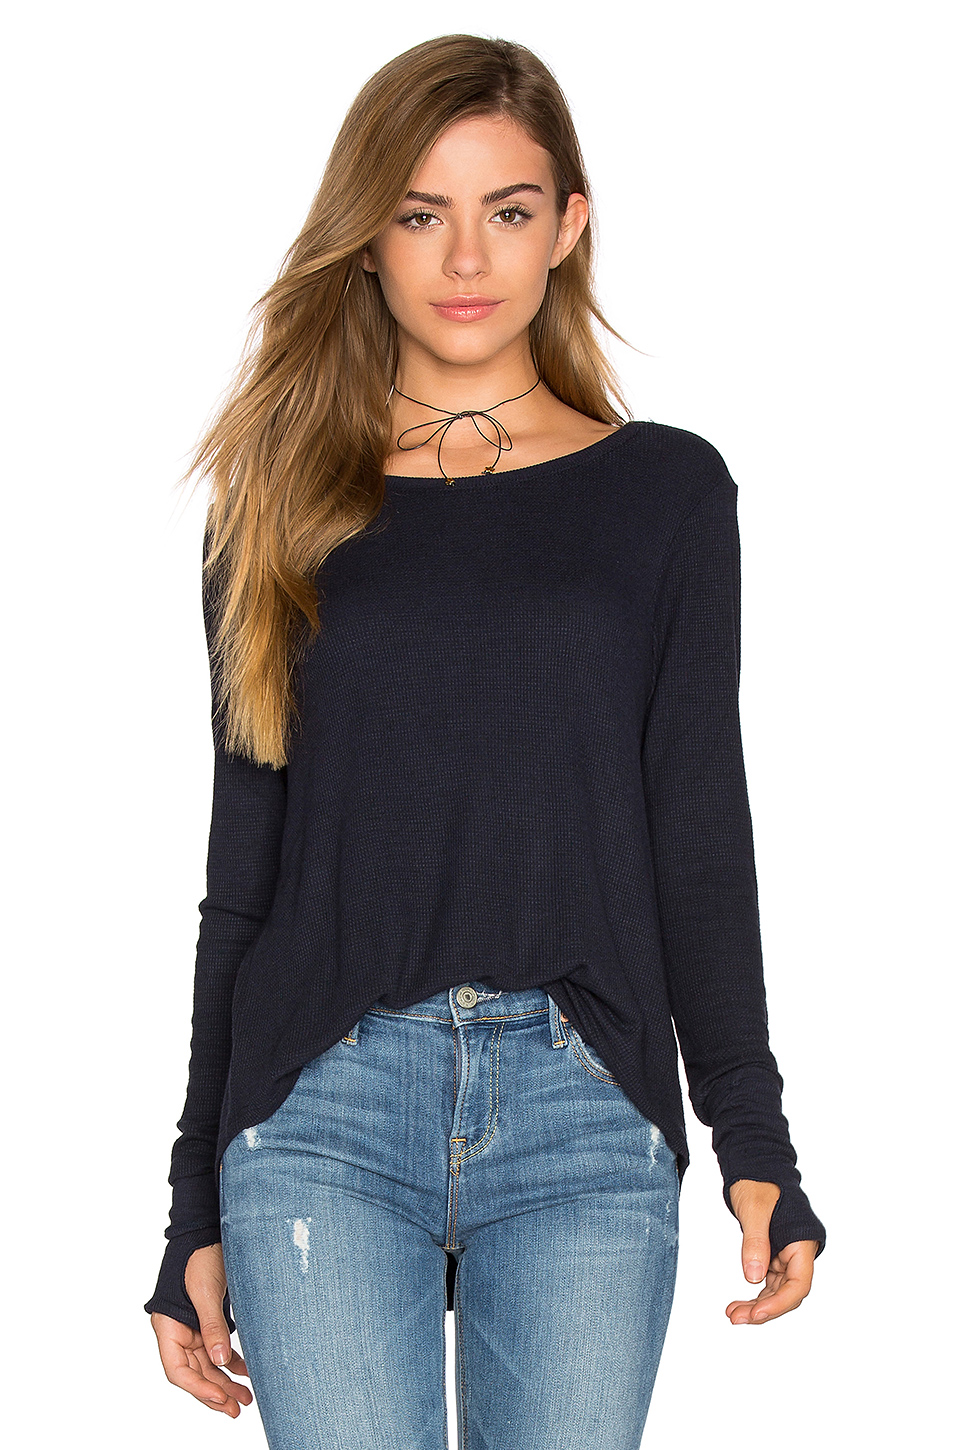 Arca Top in Navy Feel The Piece Best Place To Buy With Credit Card Cheap Online Ebay Cheap Price Clearance Cheap Real Best Seller Cheap Online ahF7HHzc